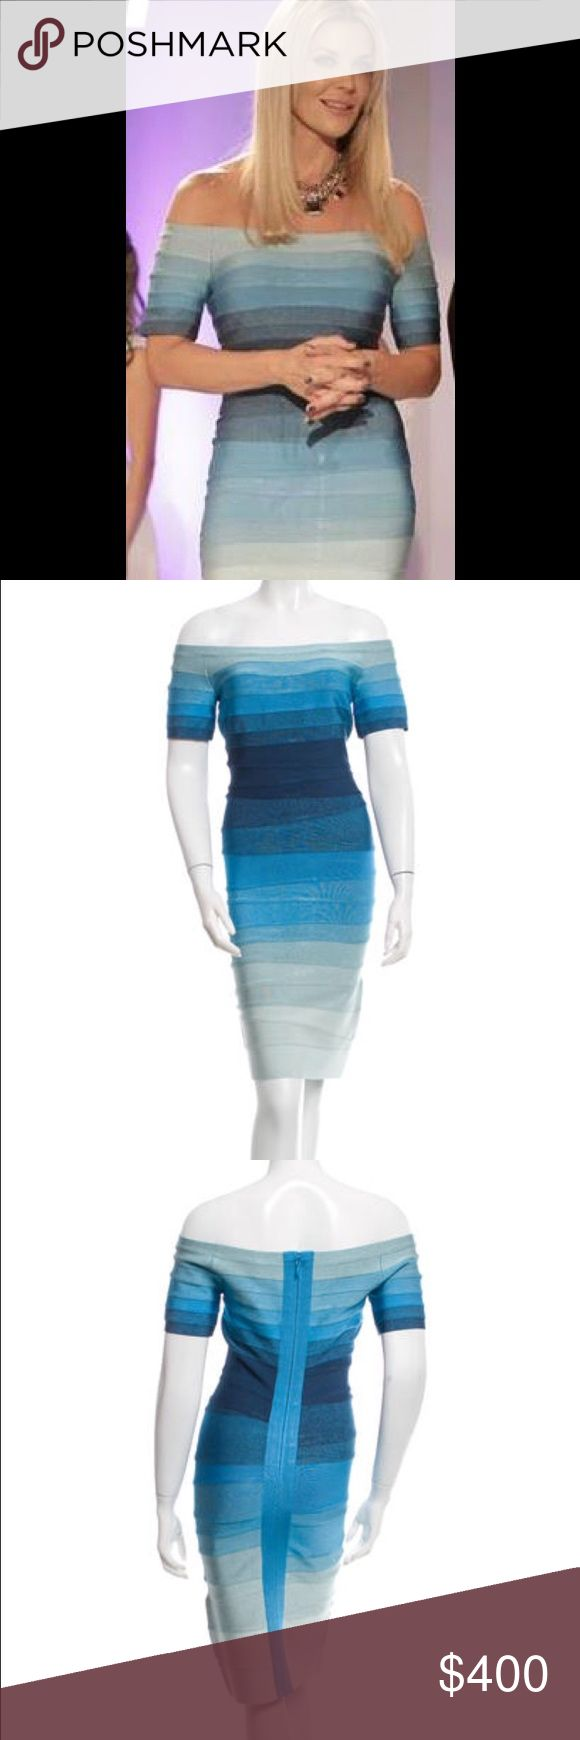 Authentic Herve Léger! The coveted Bridget ombré Herve Léger! So different you're sure to catch everyone's eye in this! I wore it once as you see in the first photo for a shoot. Herve Leger Dresses